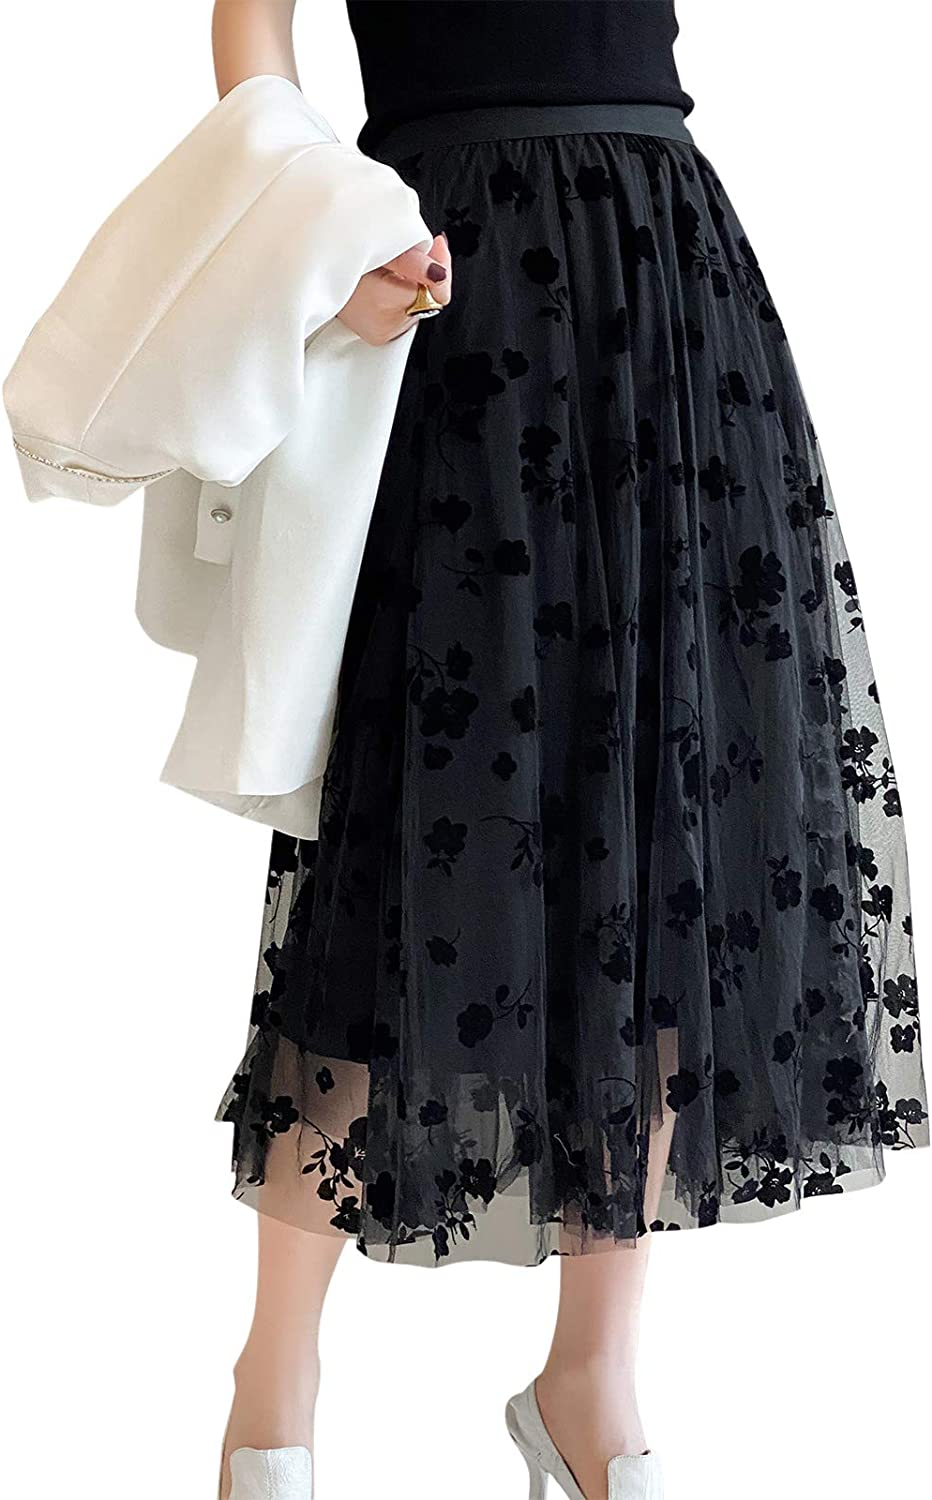 Women Tutu Tulle Skirt Elastic Layered Waist High Memphis Mall Challenge the lowest price of Japan ☆ P Floral